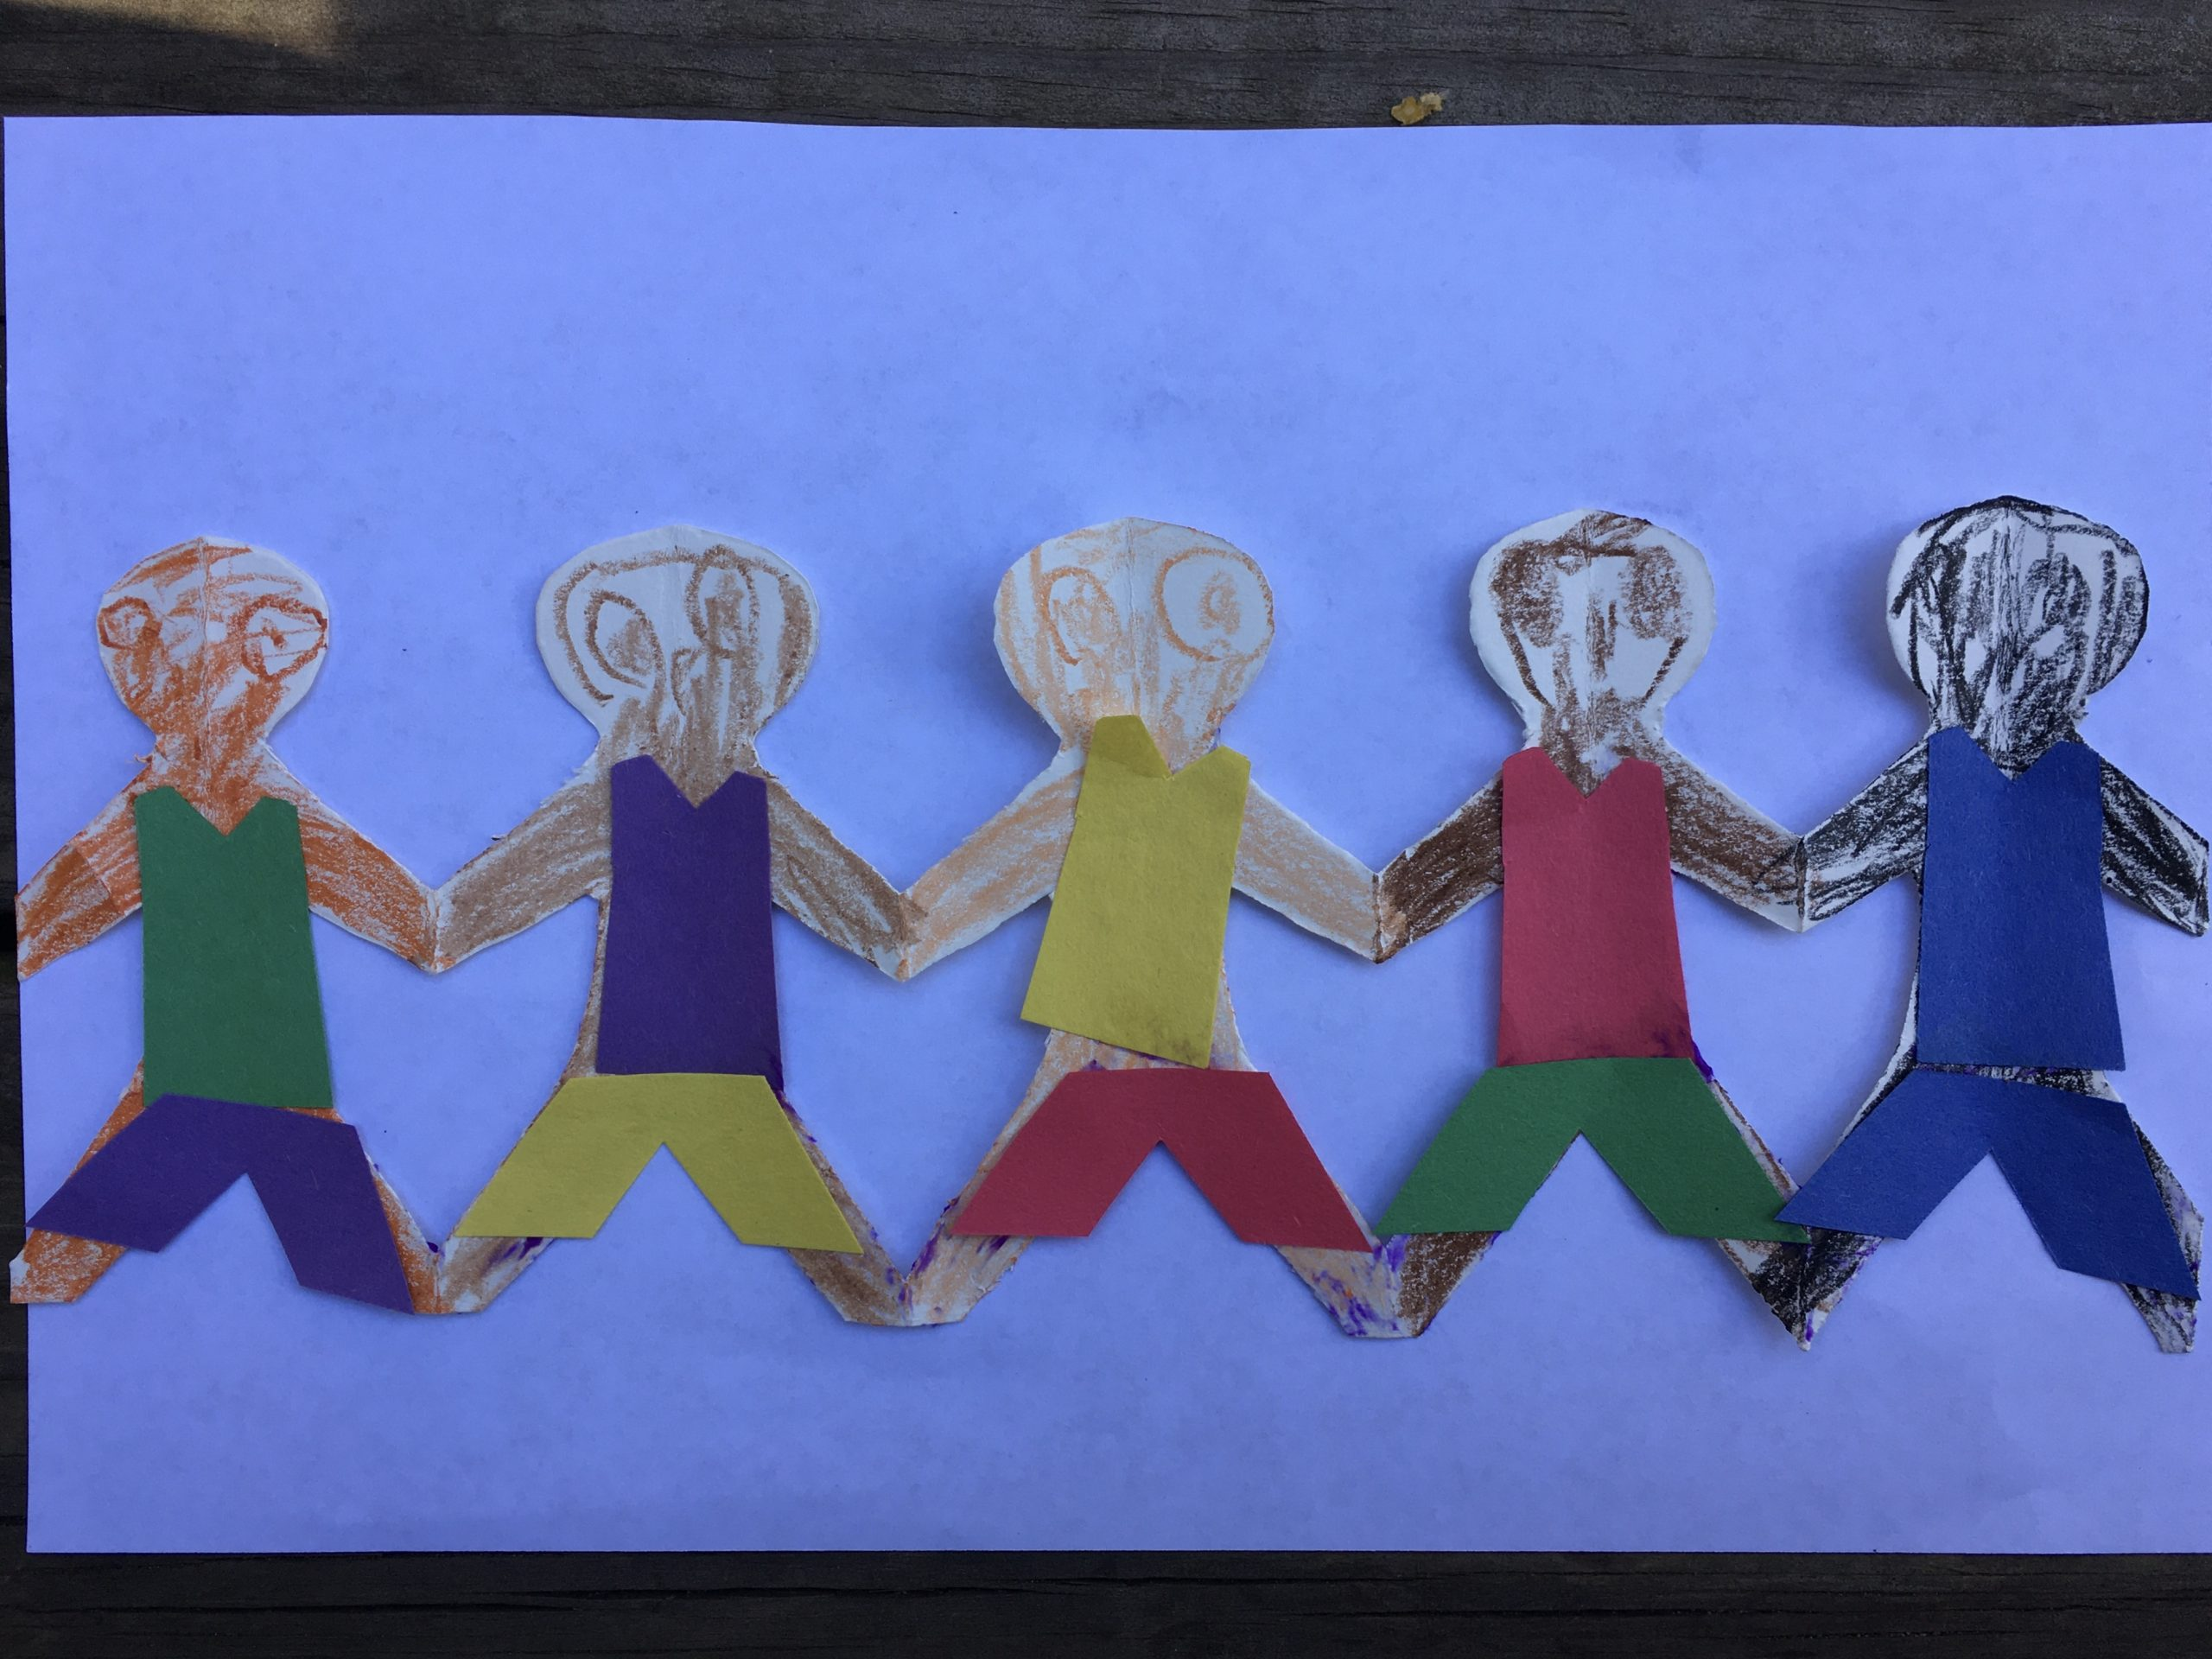 teaching our kids to celebrate diversity - diverse paper dolls